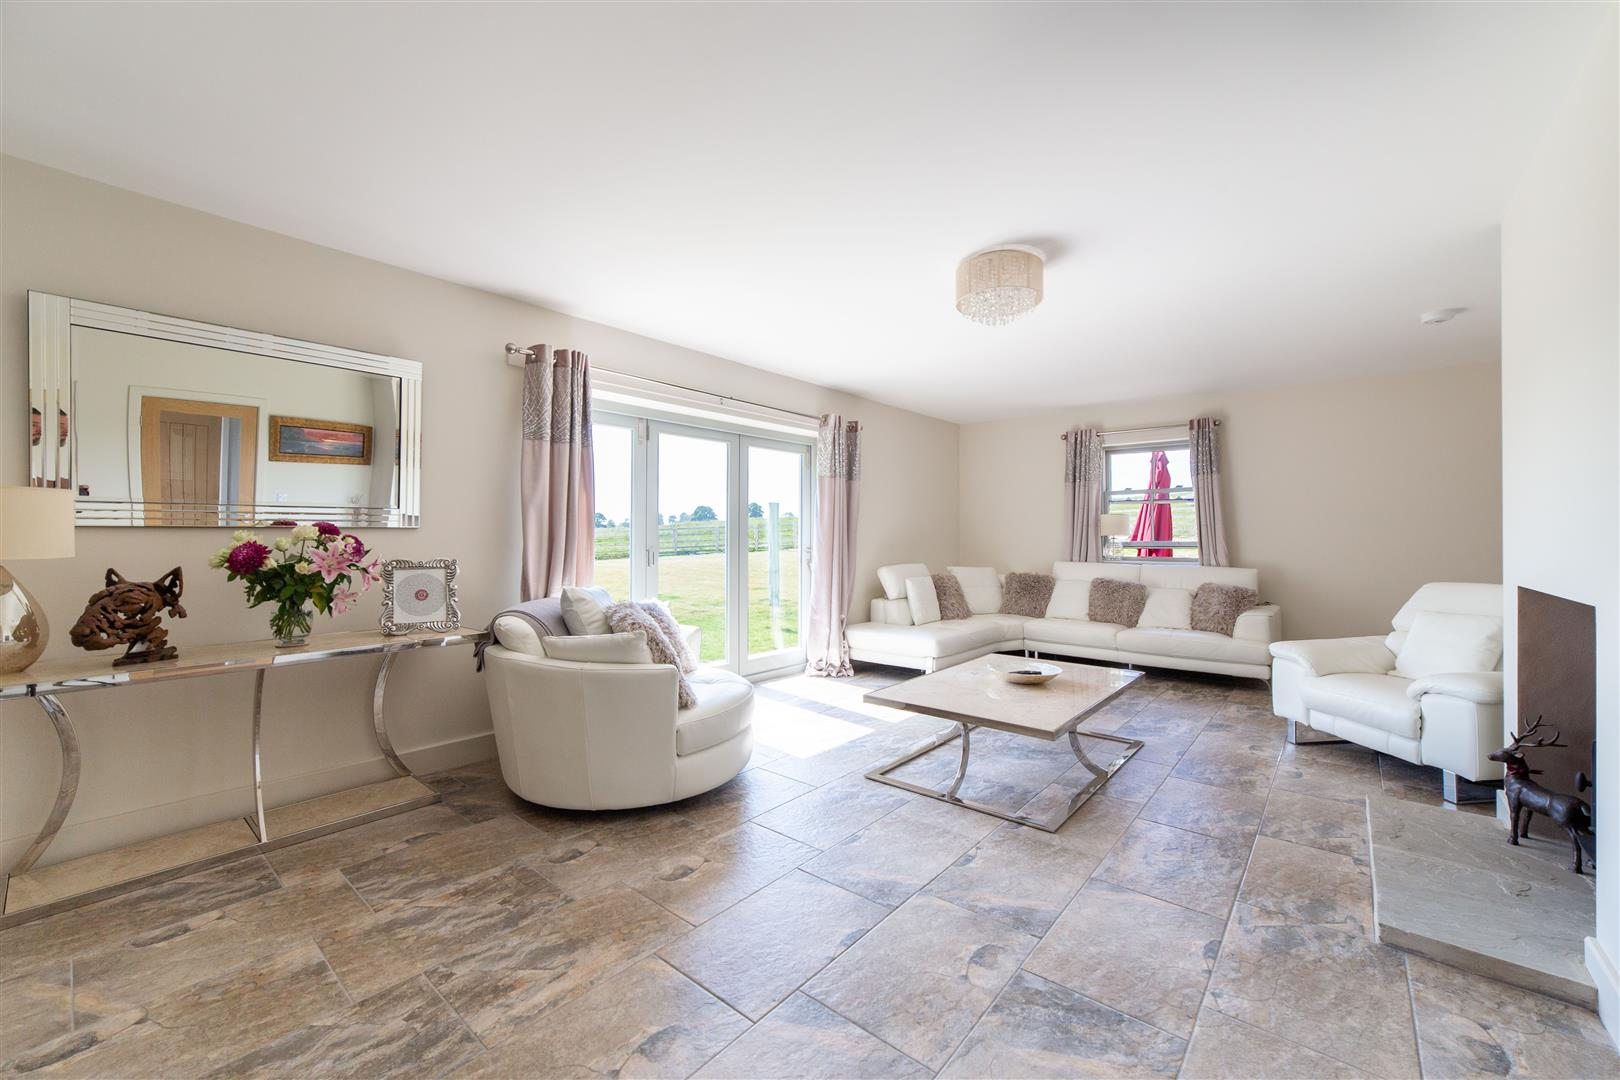 4 bed detached house for sale, Hexham 13